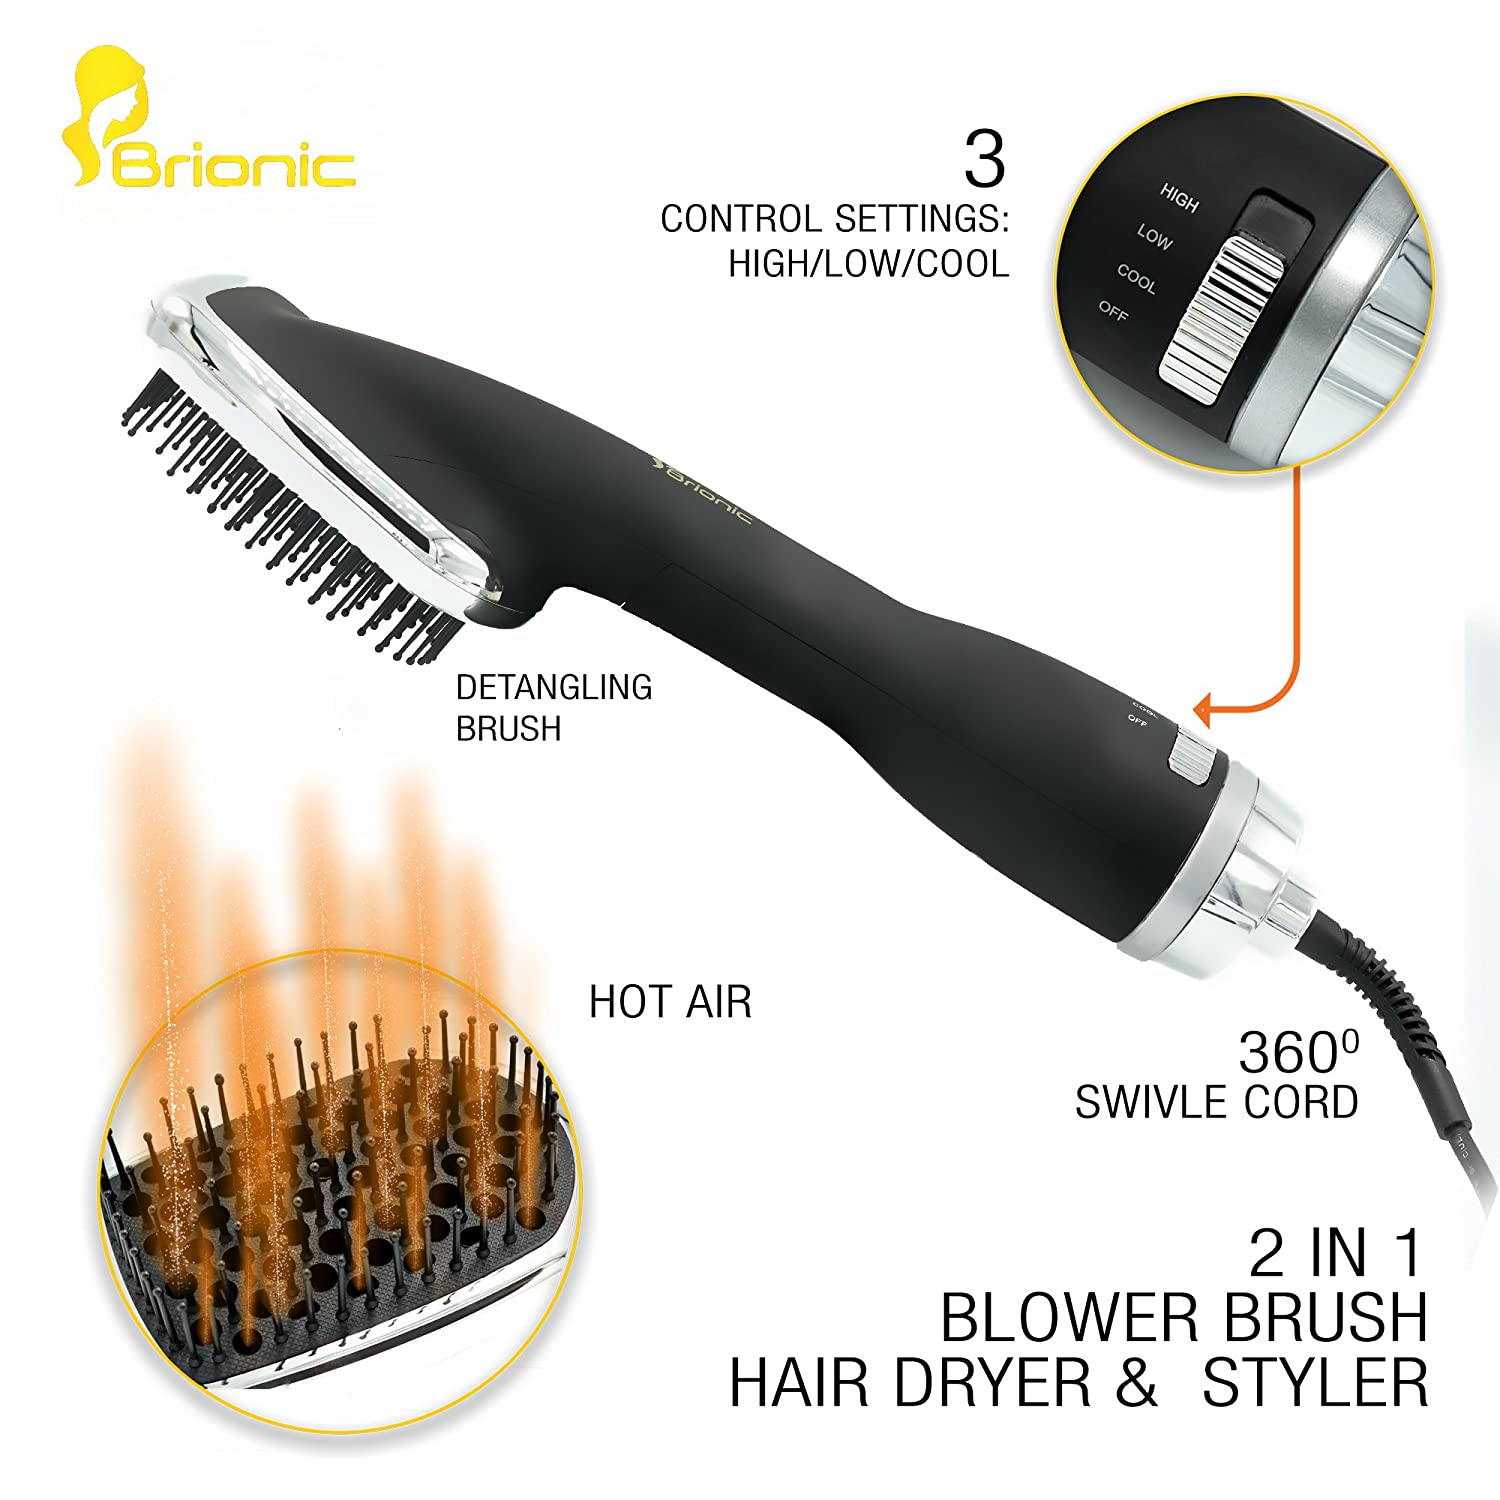 One-Step Hair Dryer & Styler Brionic Tourmaline/Ceramic/Ionic | Professional Anti-Static Hair Blower for Quick Hair Drying & Protection